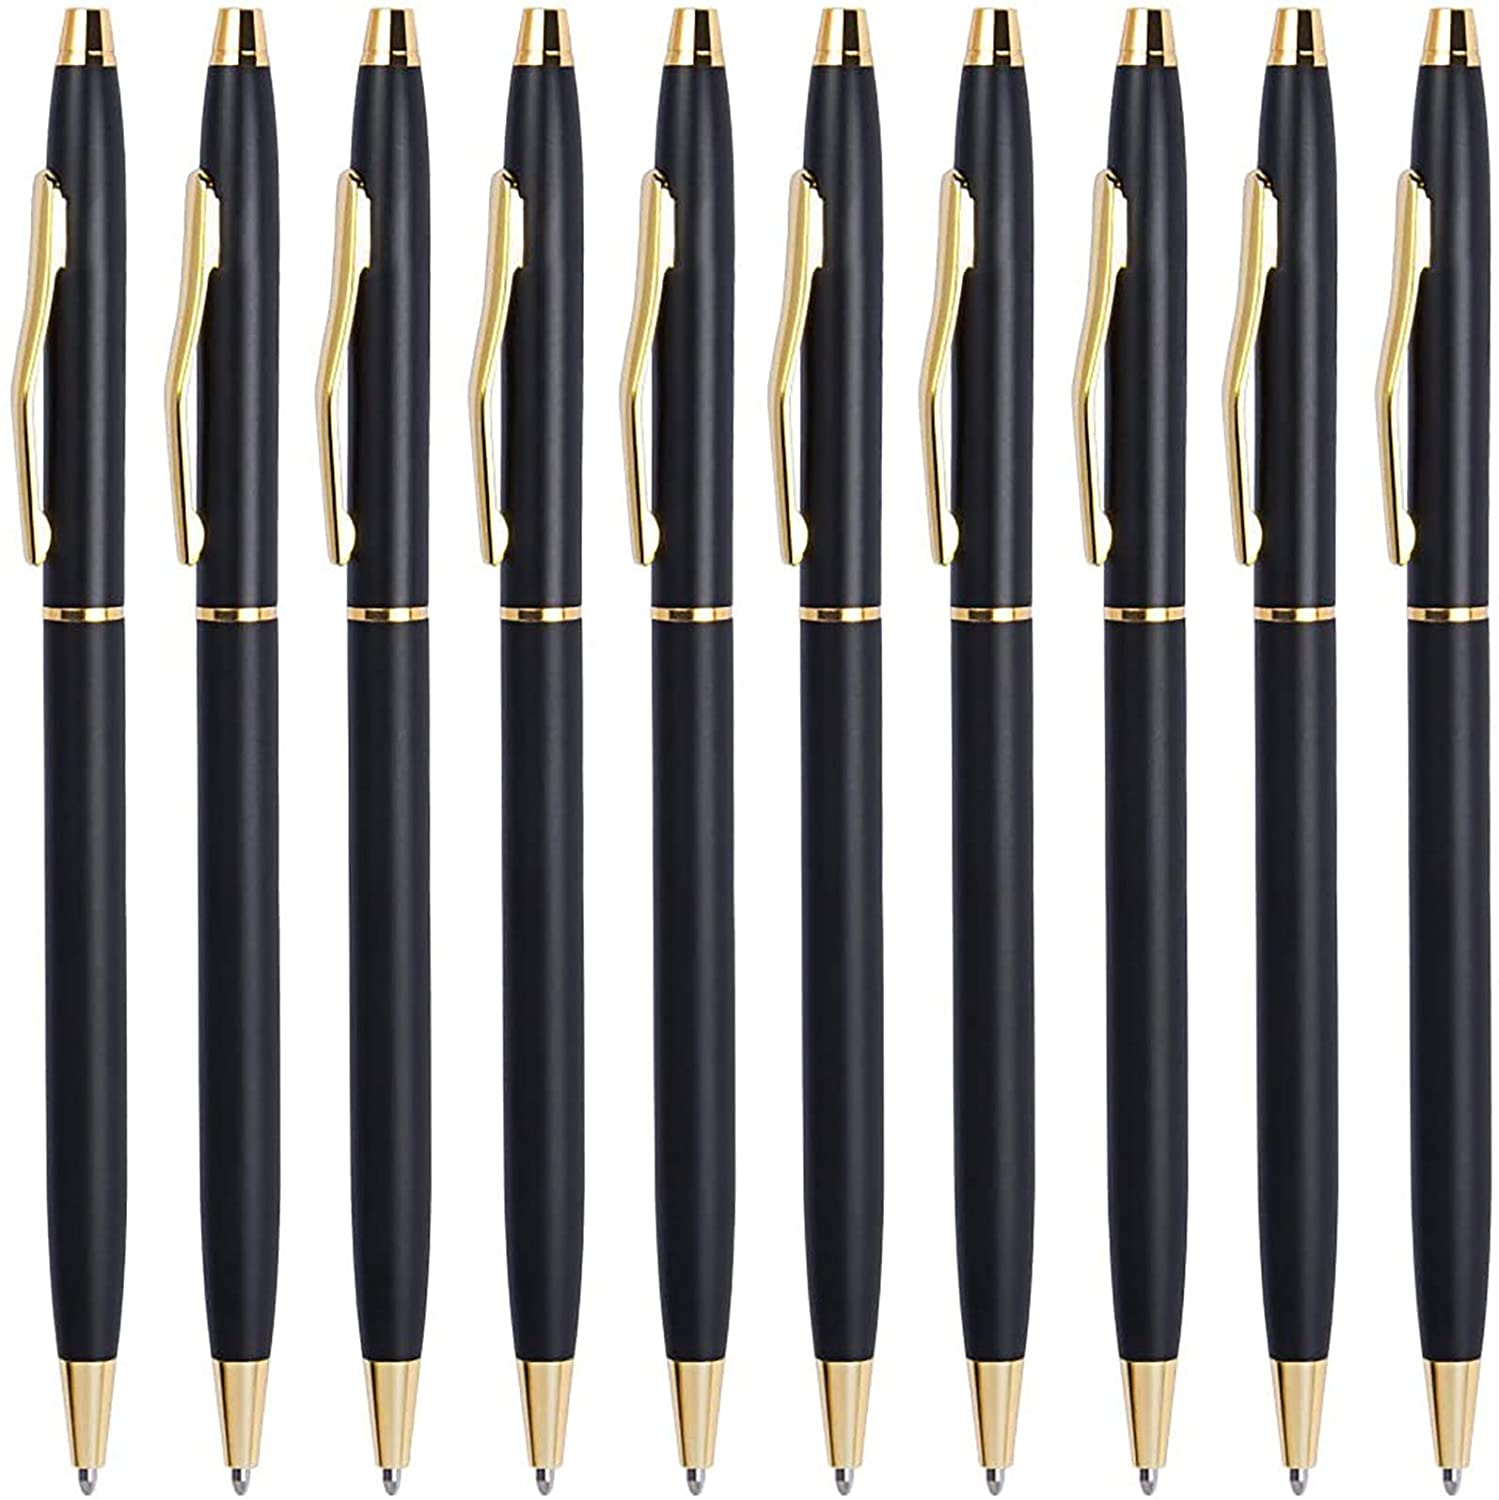 Black Pens, Cambond Ballpoint Pen Bulk Black Ink 1.0 mm Medium Point Smooth Writing for Men Women Police Uniform Office Business, 10 Pack (Black) - CP0101-10